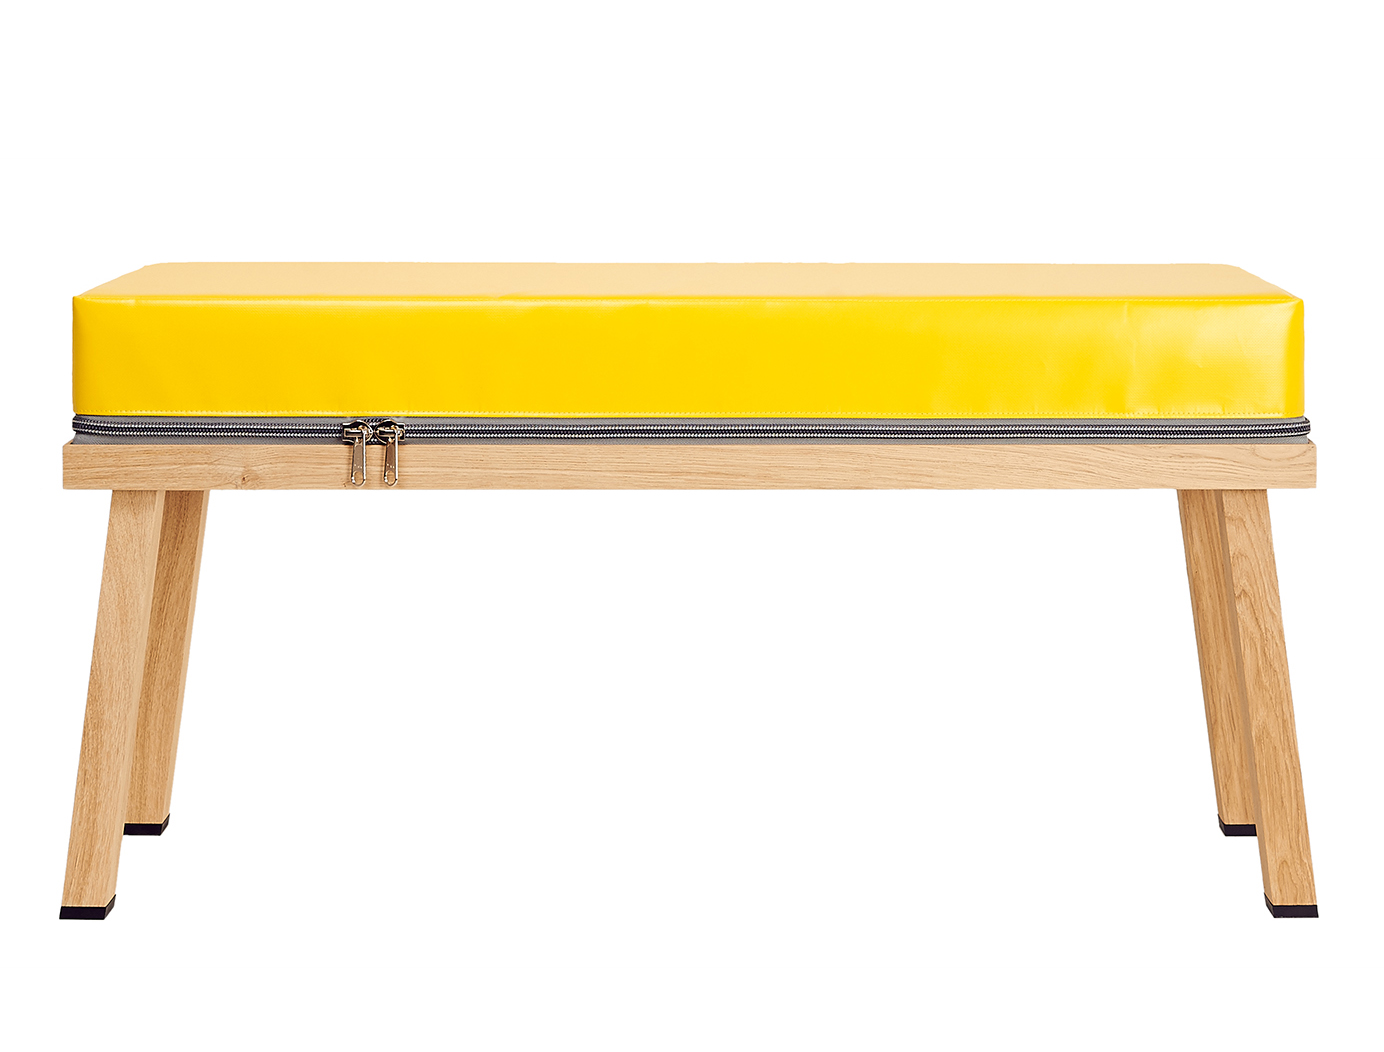 VisserMeijwaard Truecolors Bench bank yellow geel Gimmii